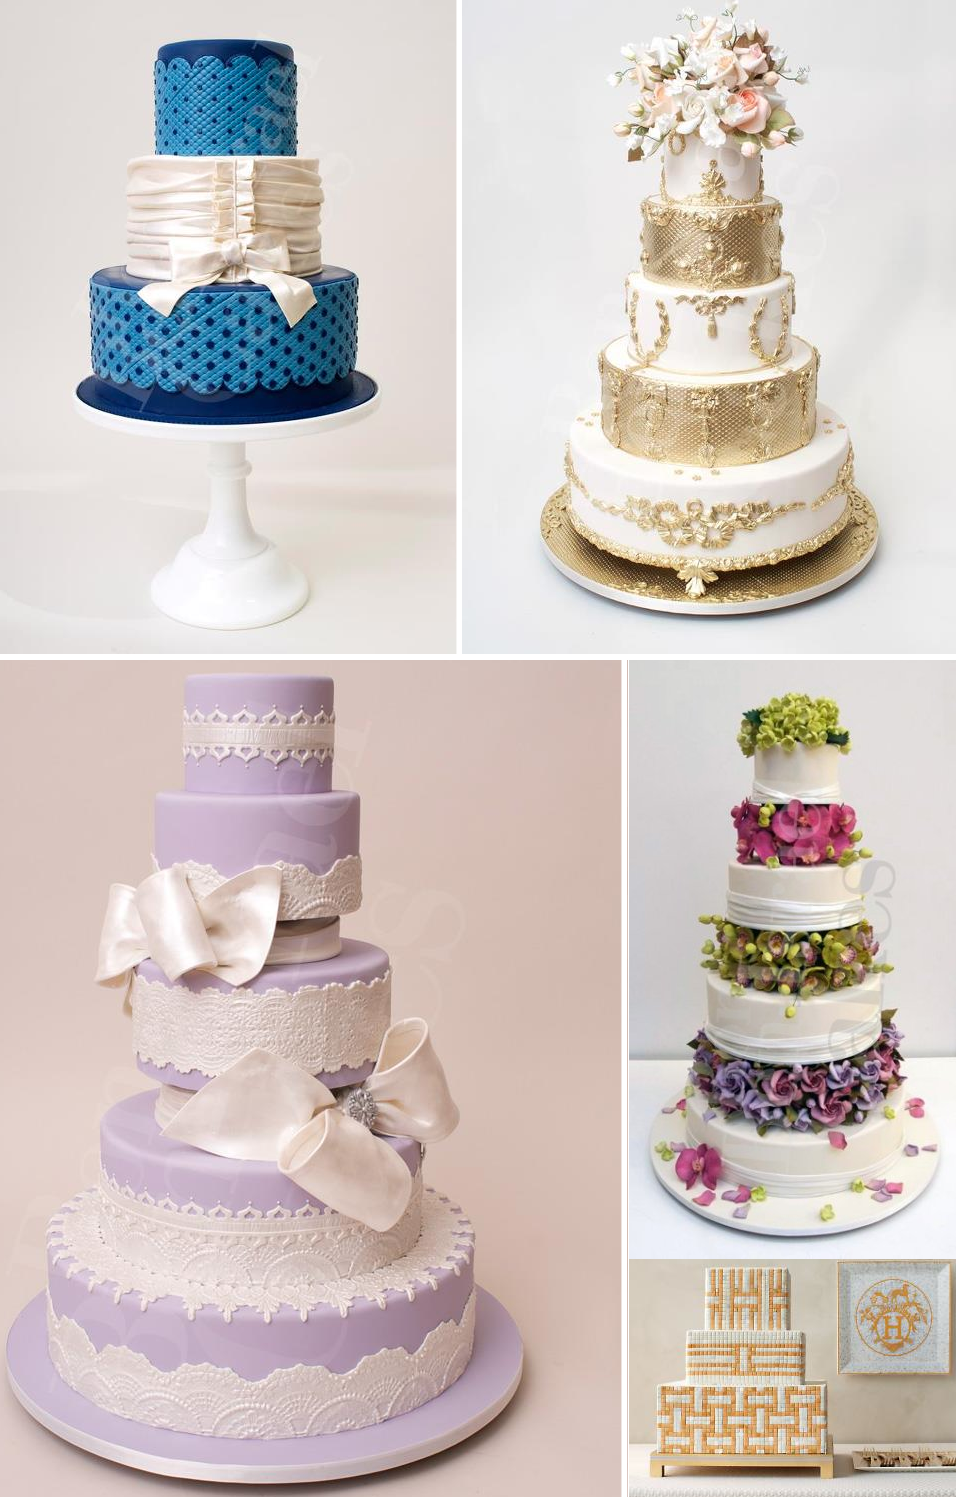 Wedding-cake-inspiration-from-nyc-ron-ben-isreal-cakes-1.original